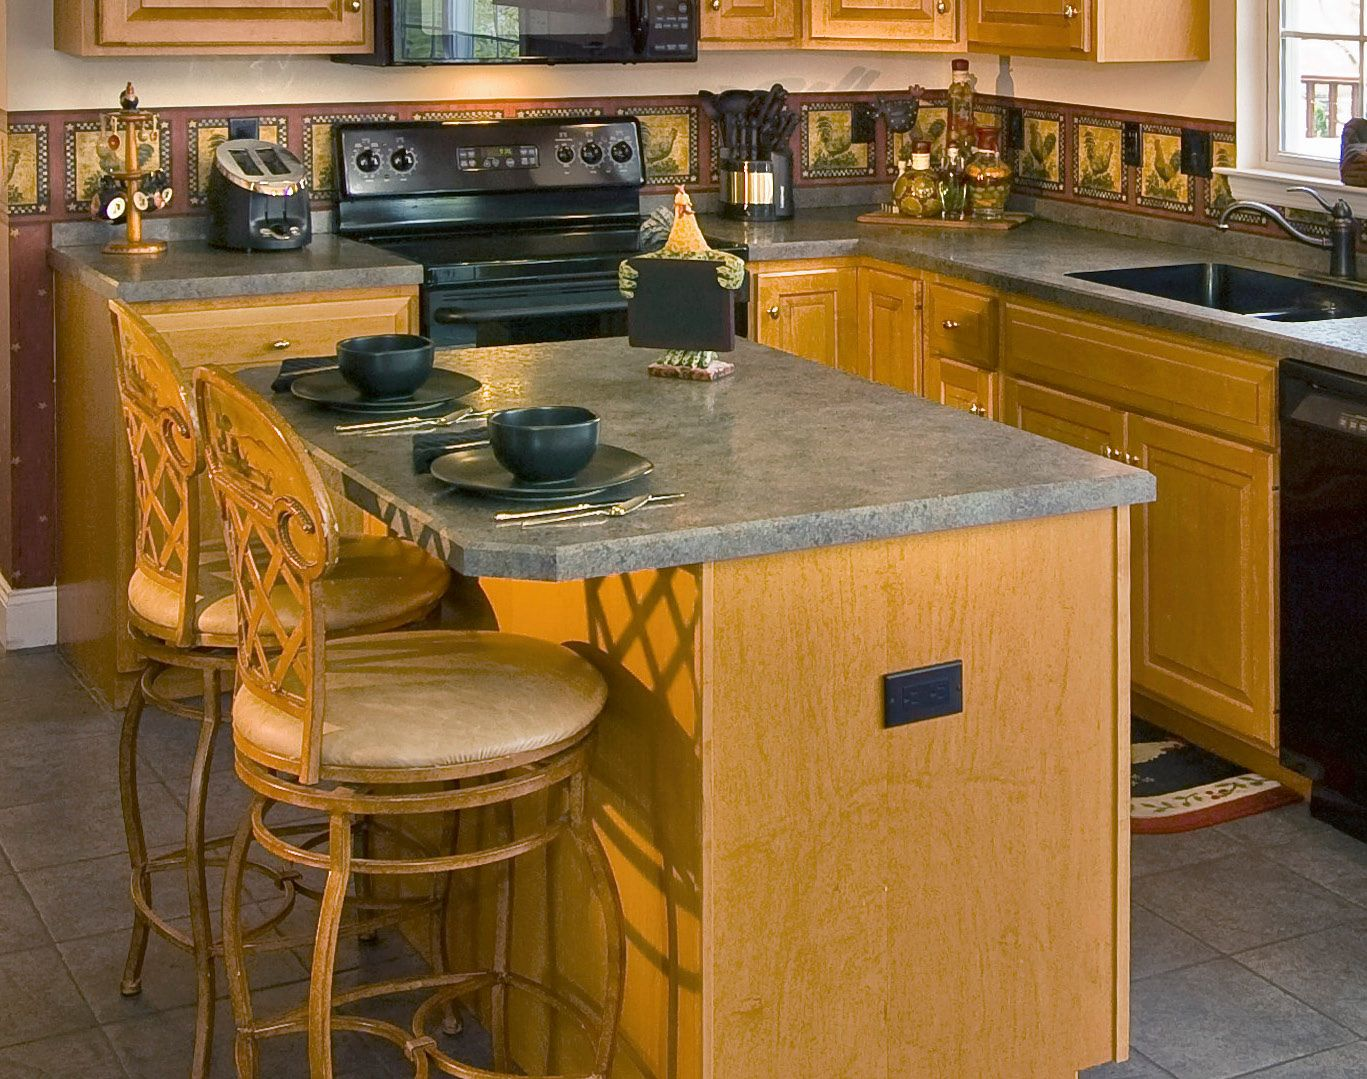 Looking To Remodel Your Outdated Kitchen? Choose Wilsonartu0027s HD Laminate Counter  Tops. Wilsonart®